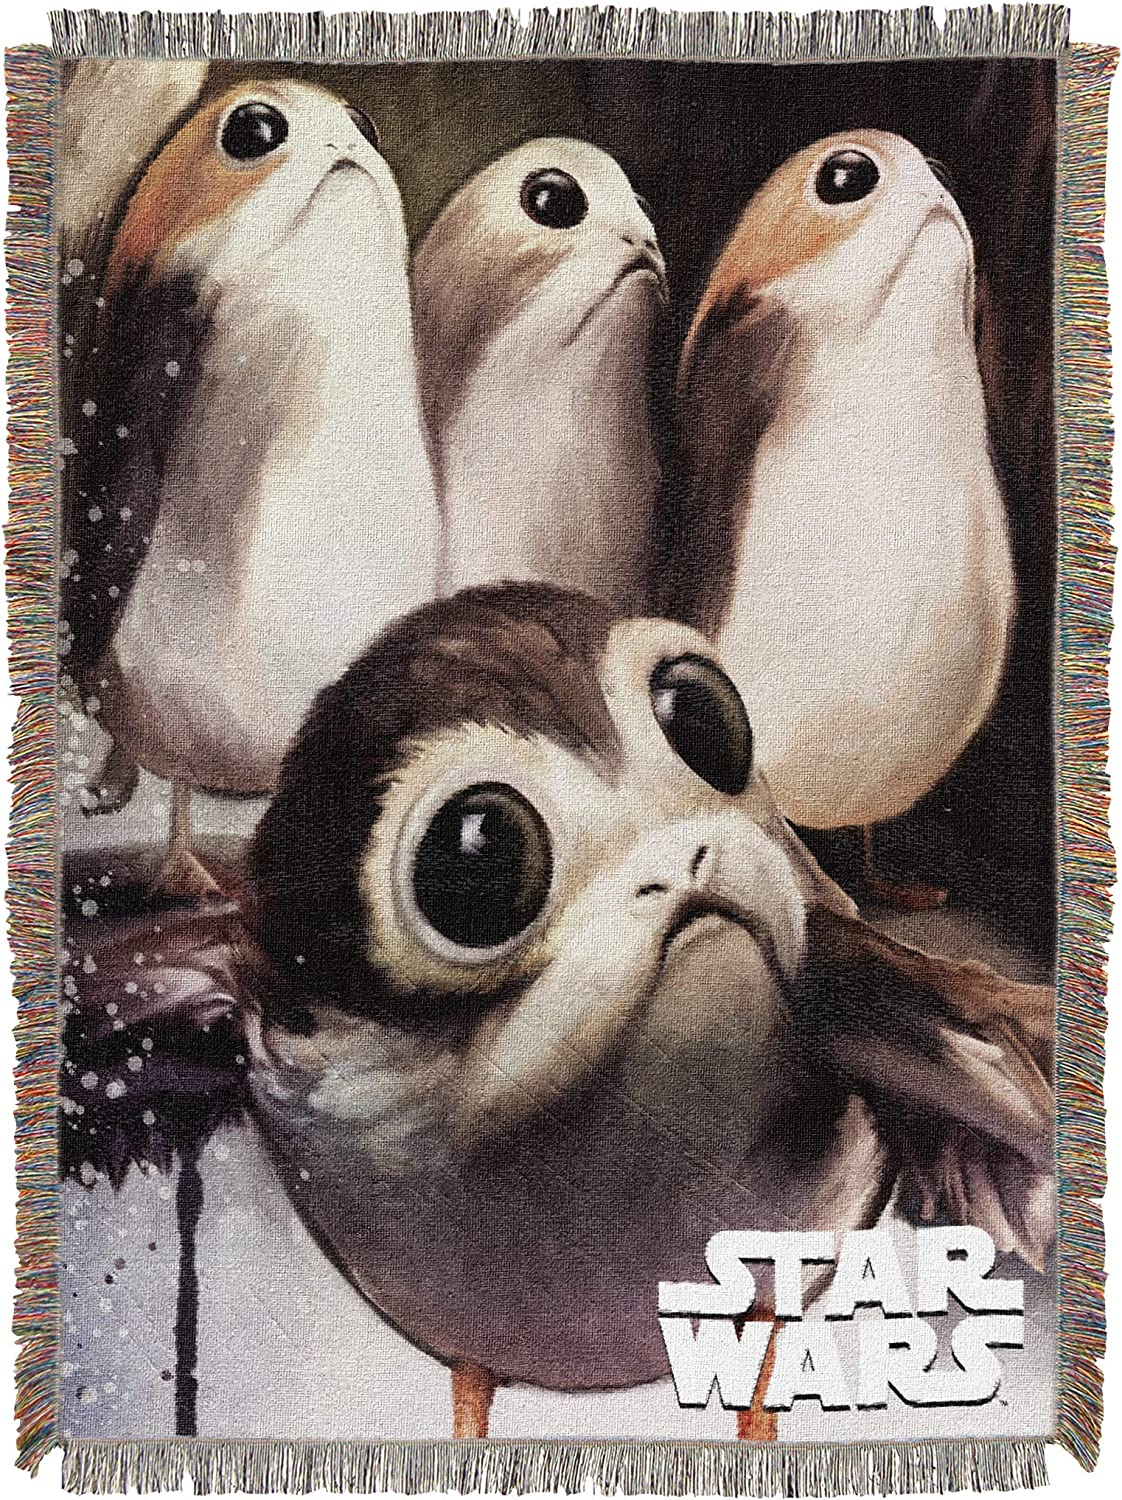 Multi Color Disney Star Wars: The Last Jedi 48 x 60 Feed the Porgs Woven Tapestry Throw Blanket